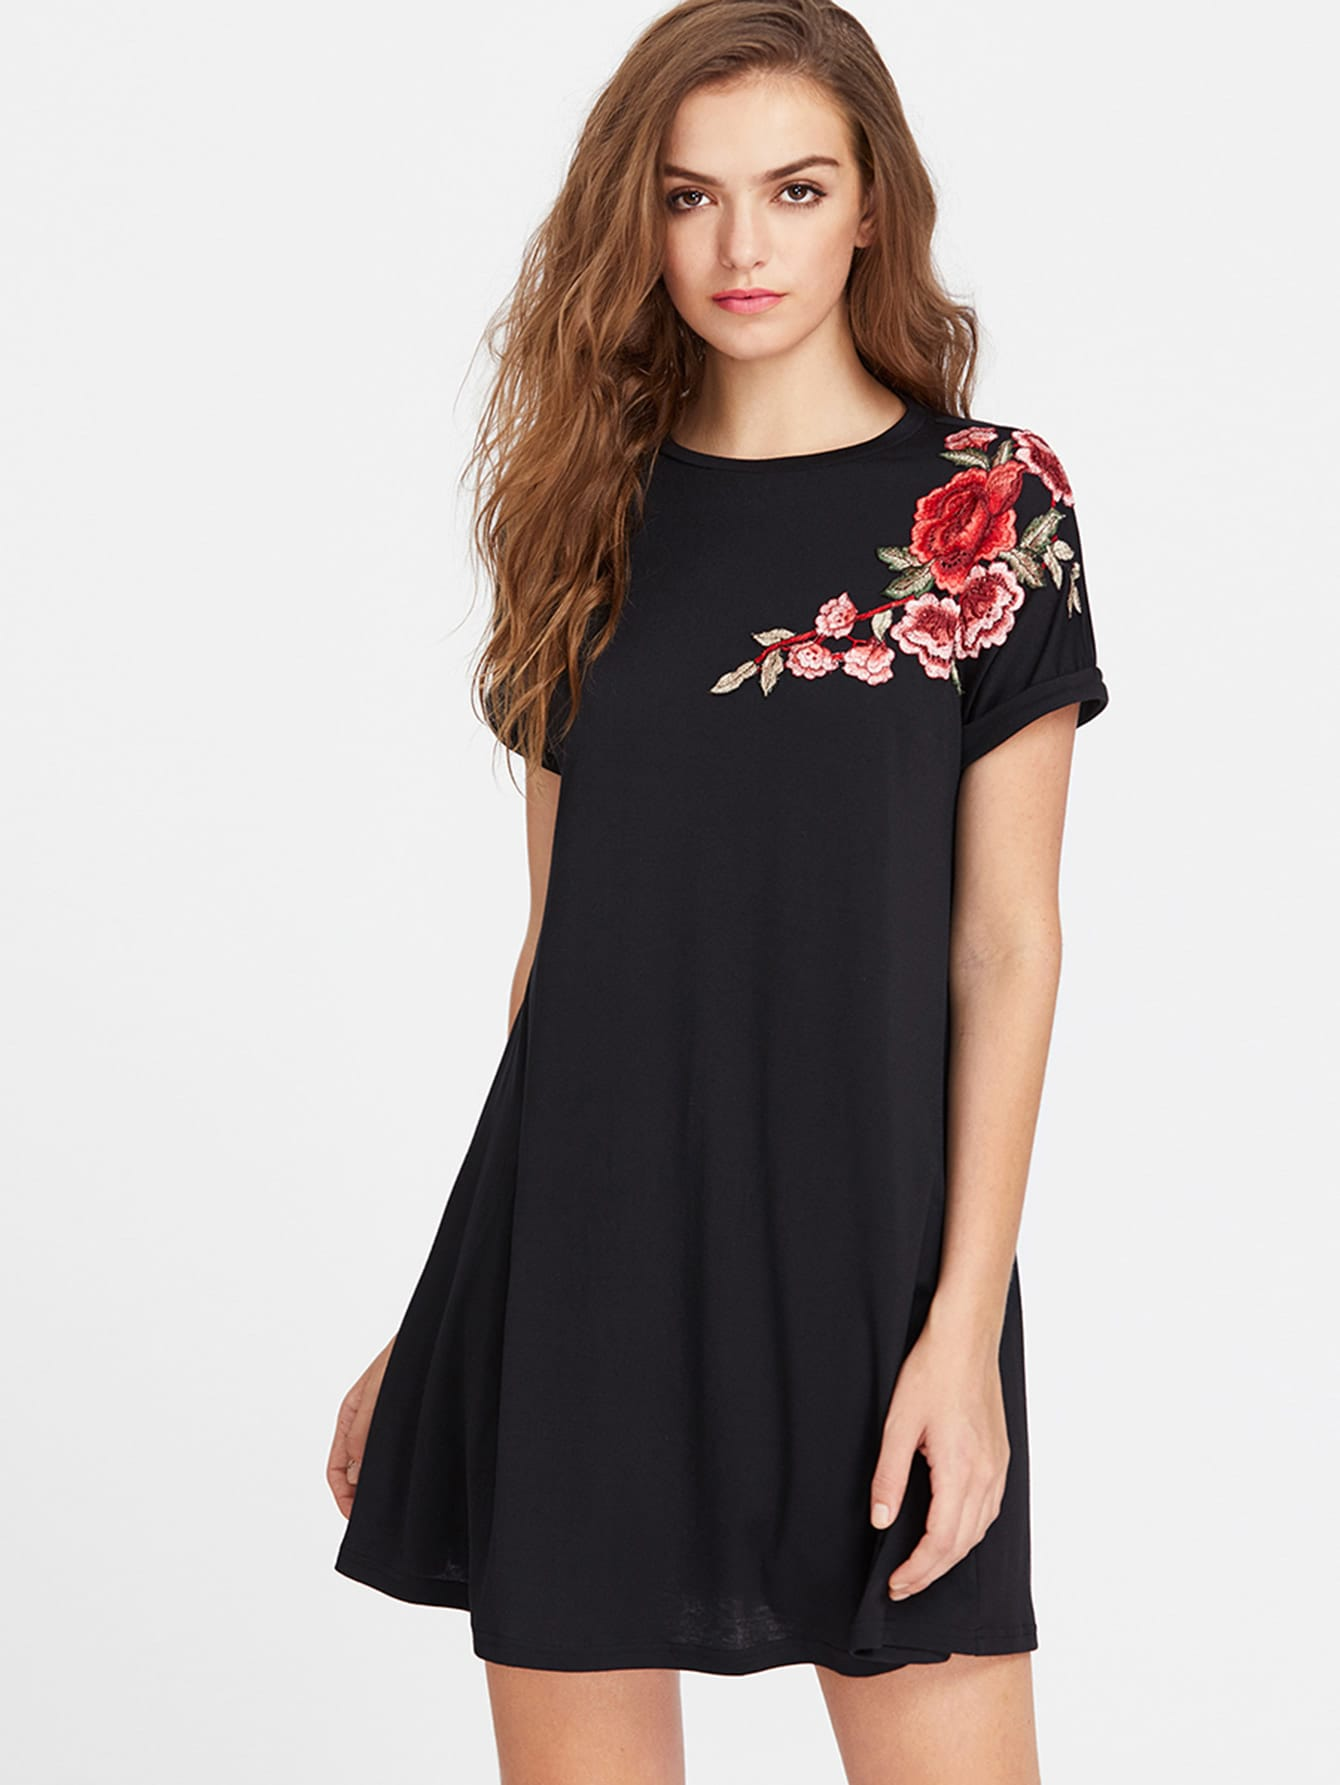 Embroidered Flower Patch Roll Cuff Swing Tee Dress flower patch full length tee dress